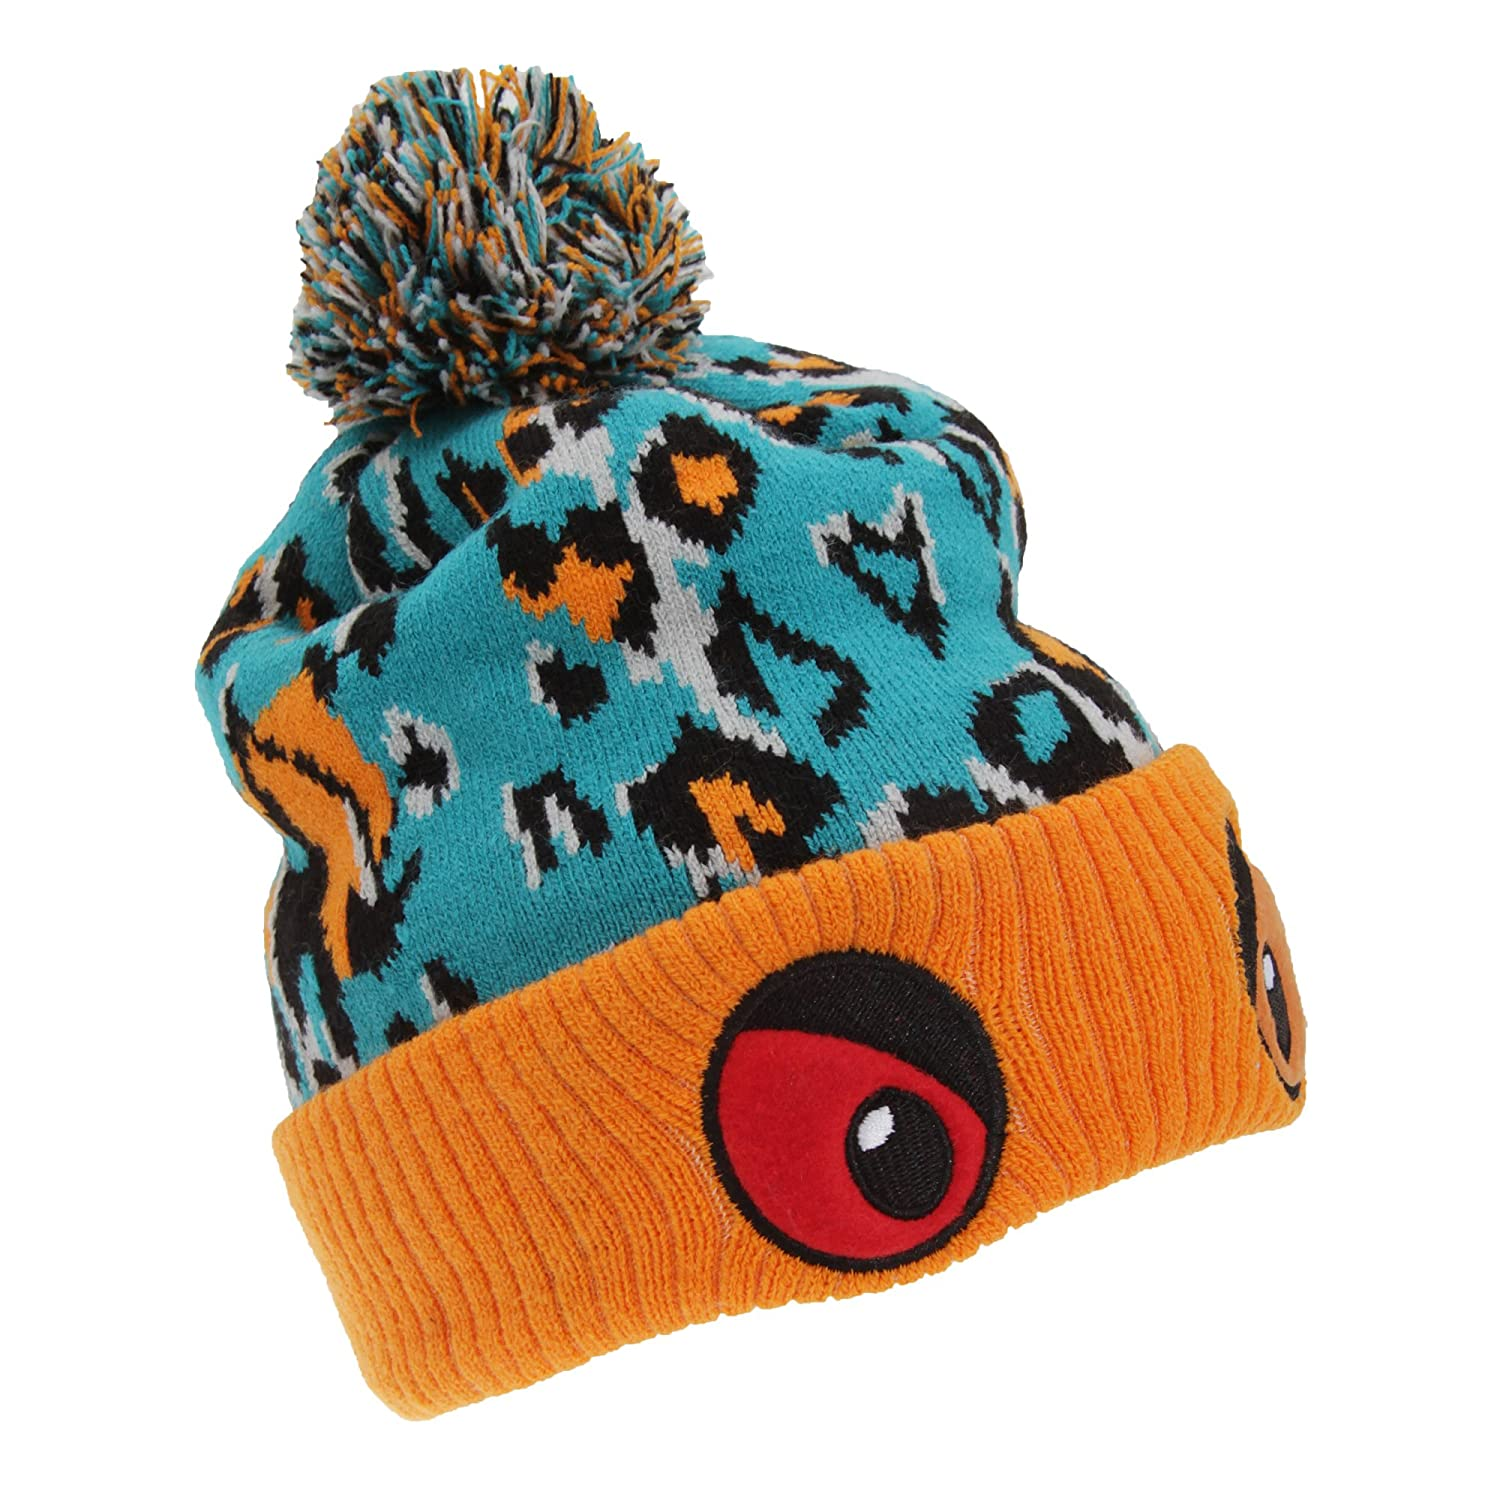 2aa259c8447 Amazon.com  Childrens Kids Monster Eyes Winter Bobble Hat (One Size)  (Blue Fuchsia)  Clothing